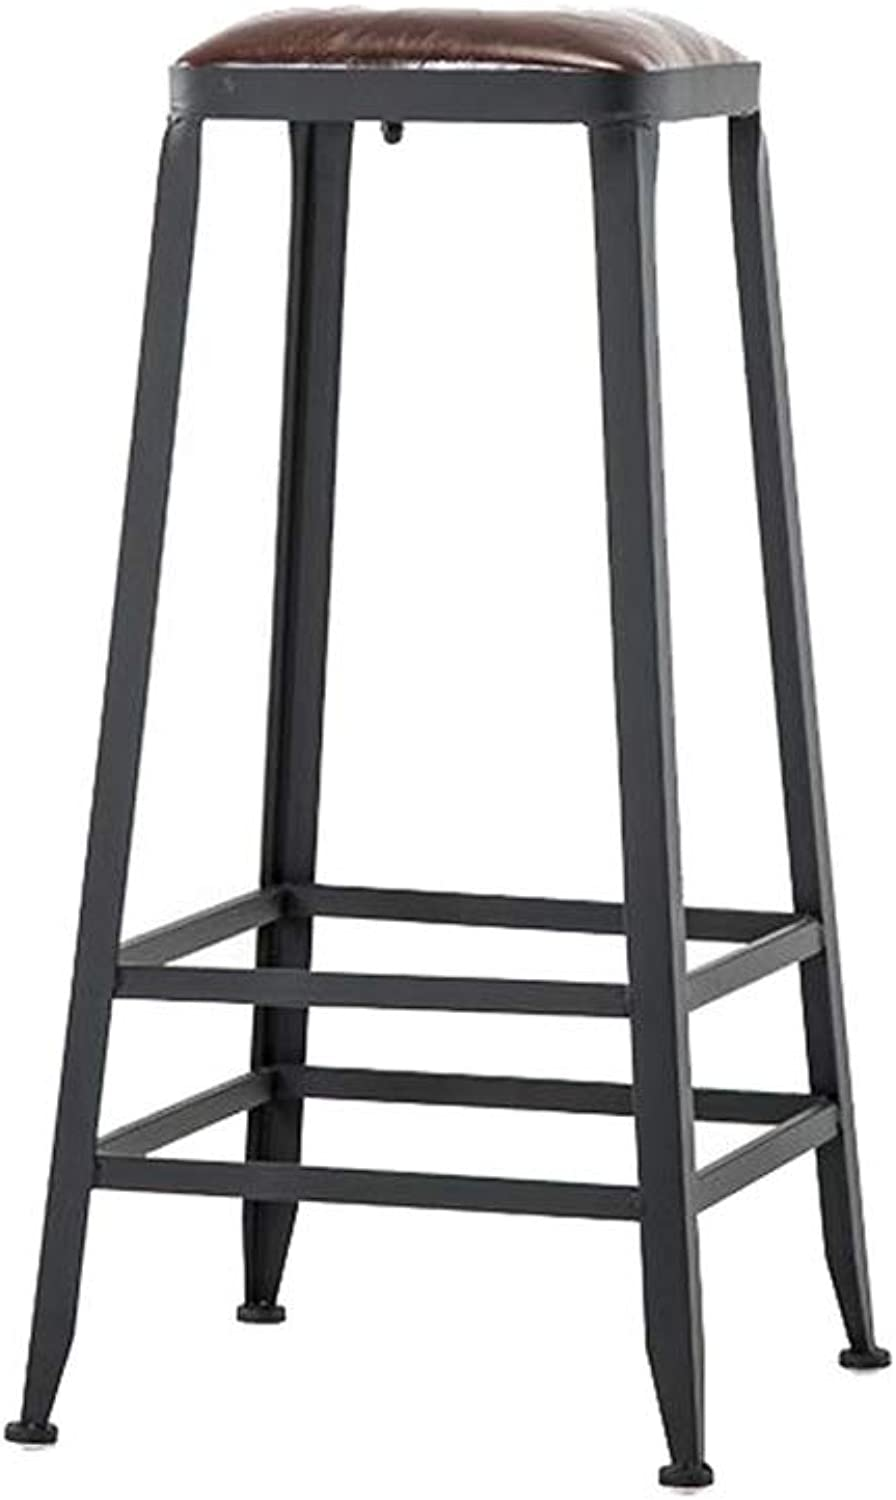 High Stool Barstool Iron Breakfast Dining Stool for Kitchen Bar Counter Home Commercial Chair with PU Cushion LOFT Industrial Retro Style (Size   Height 80cm)